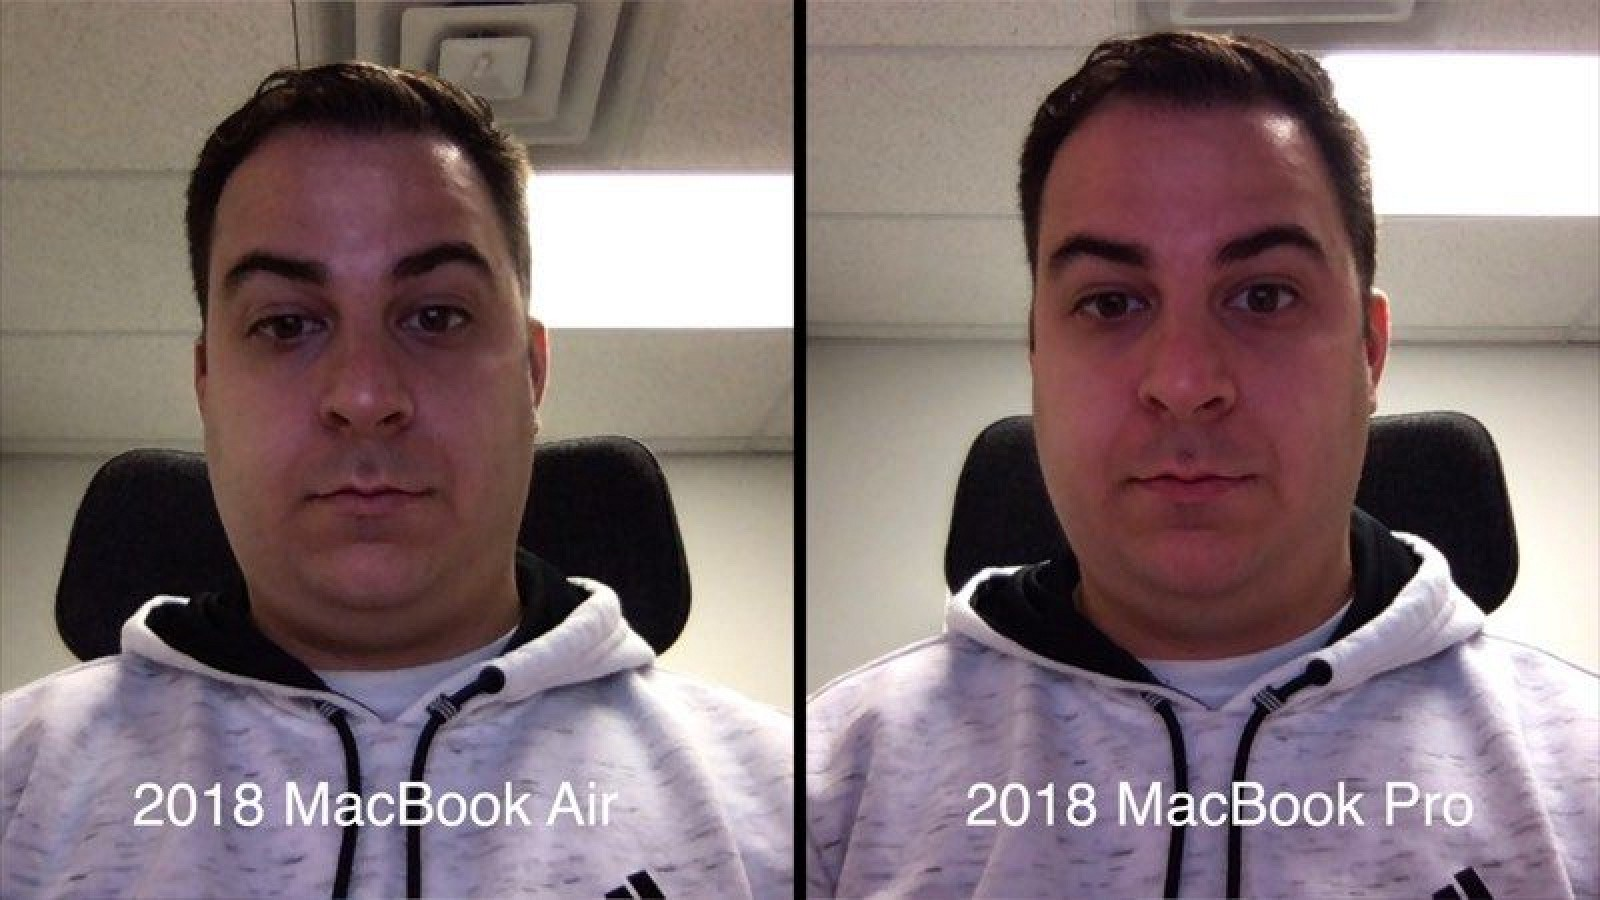 Yes The Facetime Hd Camera On The Macbook Air 2018 Is Awful